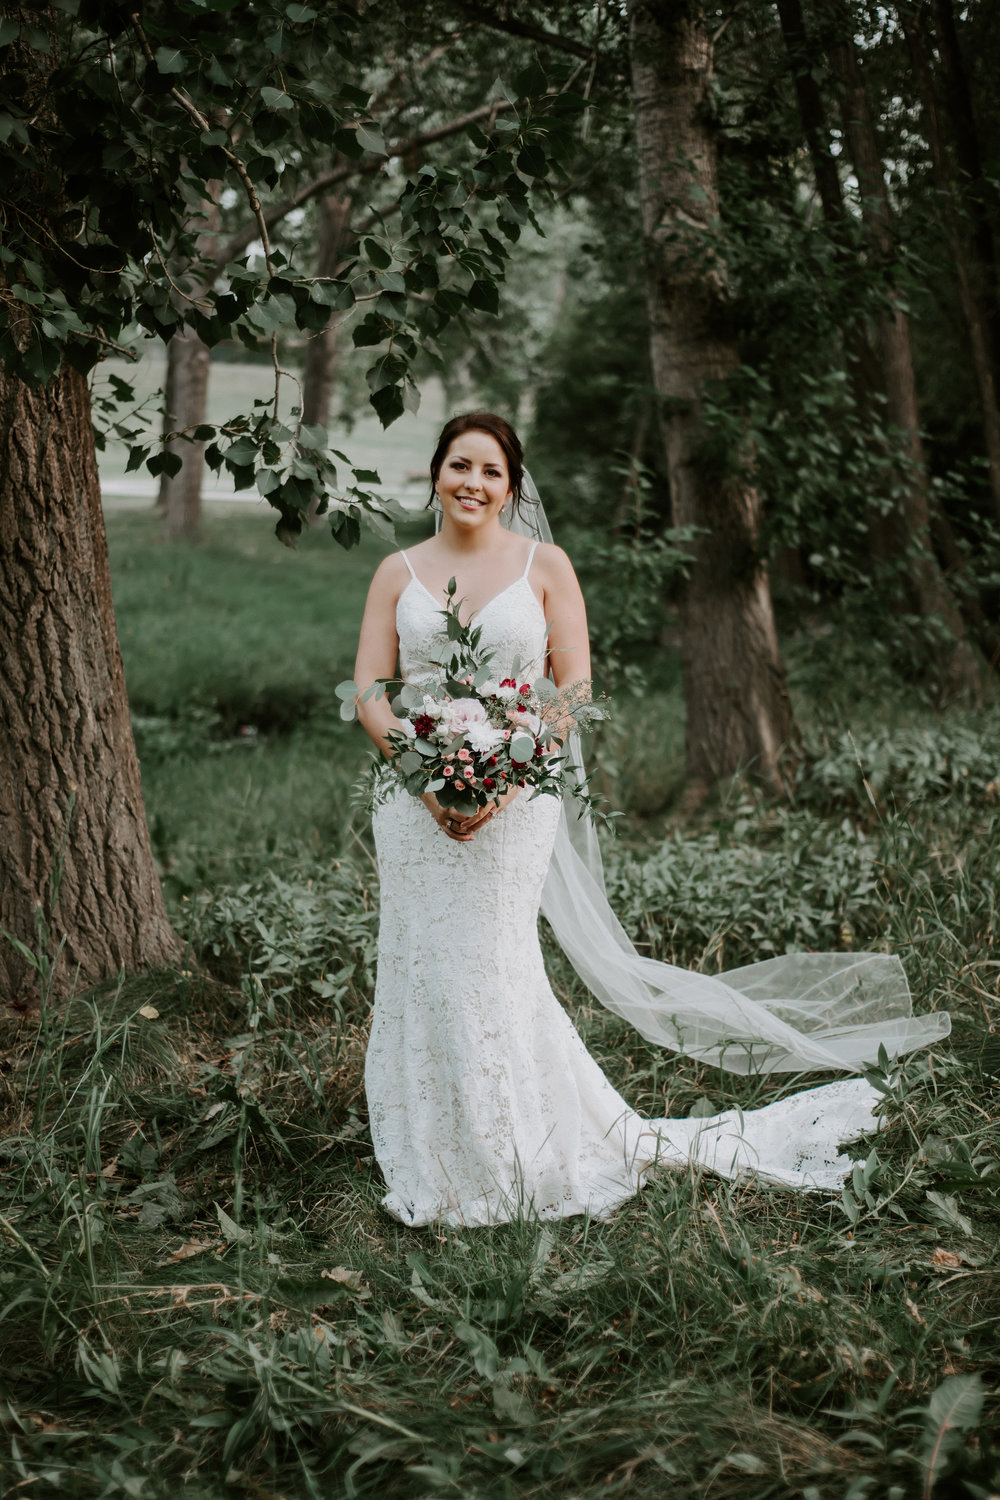 Calgary Wedding Photographer - 55 of 84.jpg